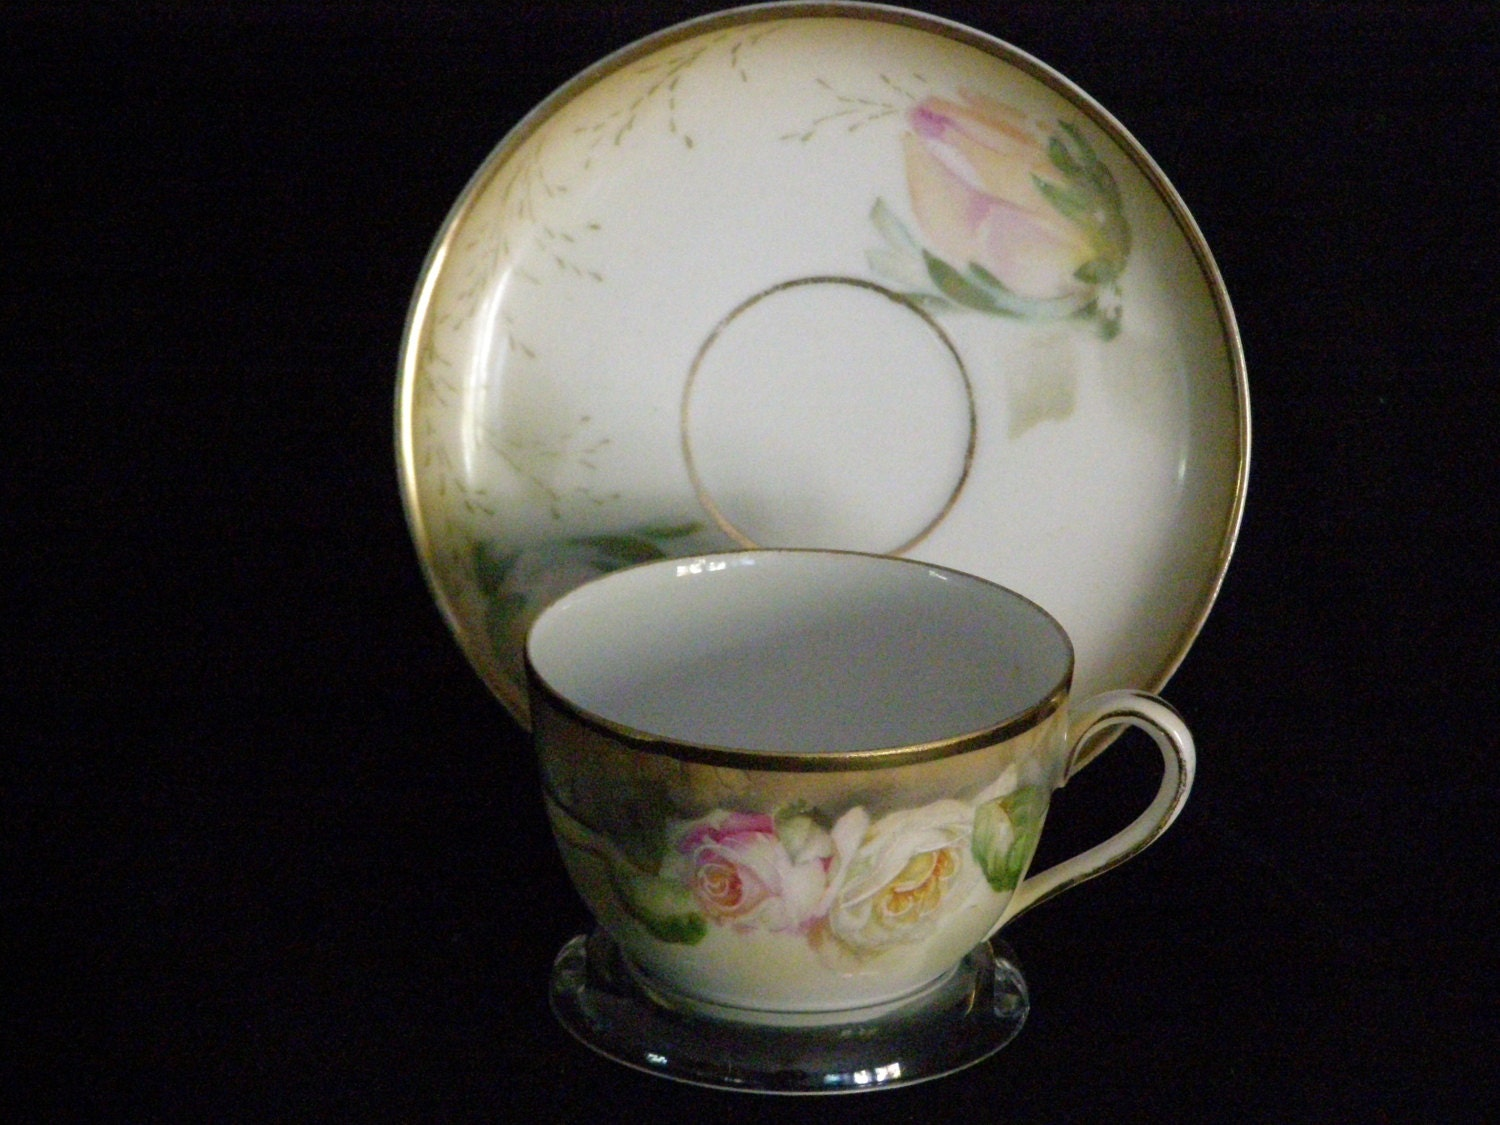 Antique Prov Sace Es Germany Tea Cup And Saucer Roses Floral